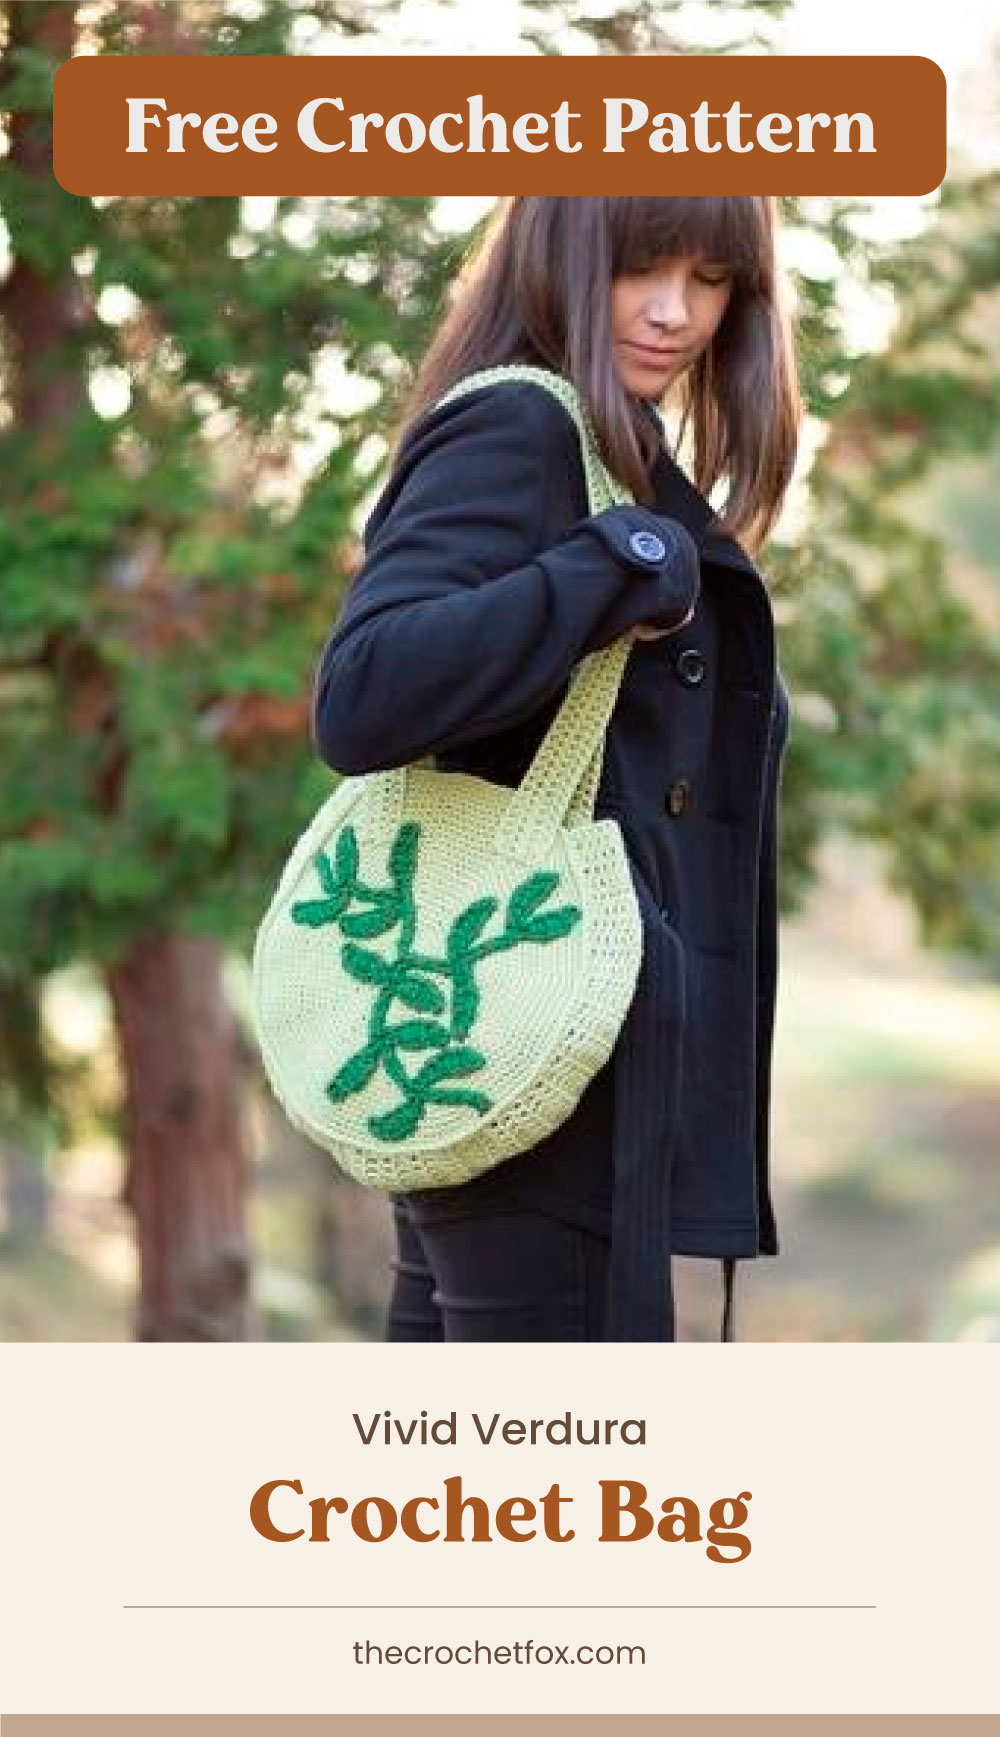 """Text area which says """"Free Crochet Pattern"""" next to a woman carrying a circular-shaped green crochet bag with a plant motif followed by another text area which says """"Vivid Verdura Crochet Bag, thecrochetfox.com"""""""